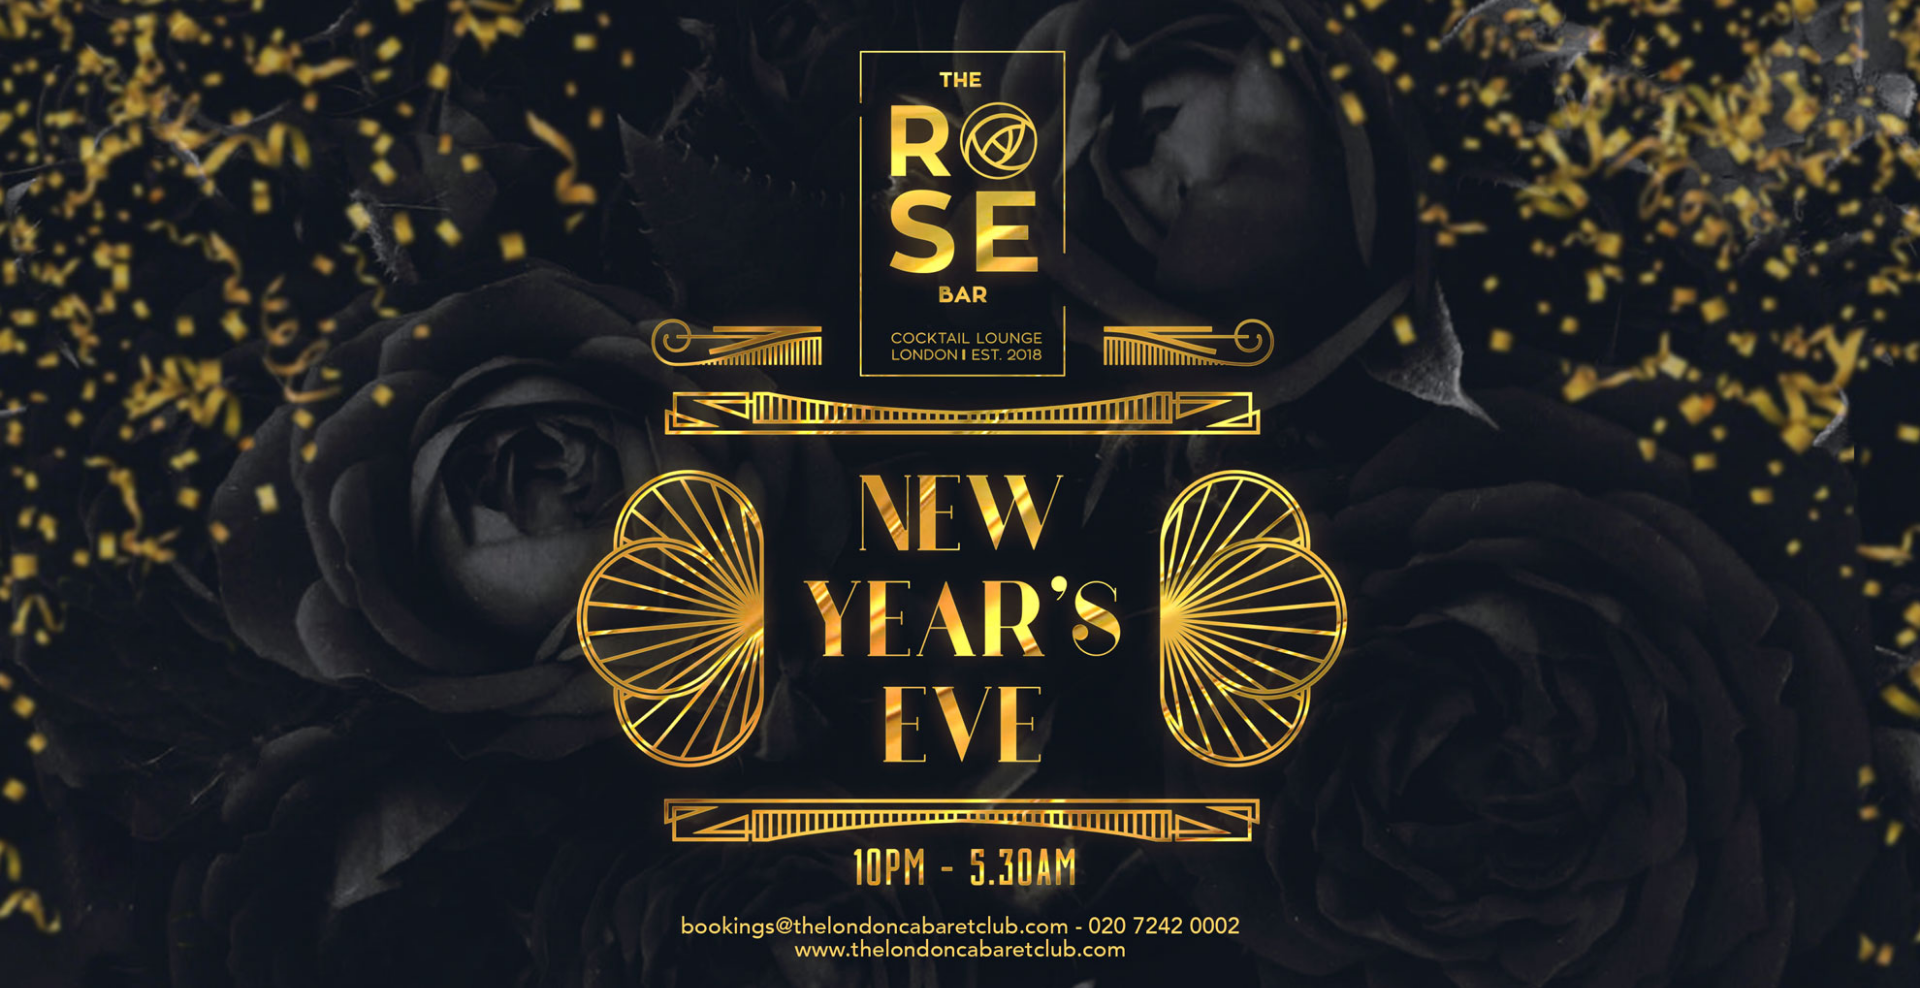 New Years Eve at The Rose Bar